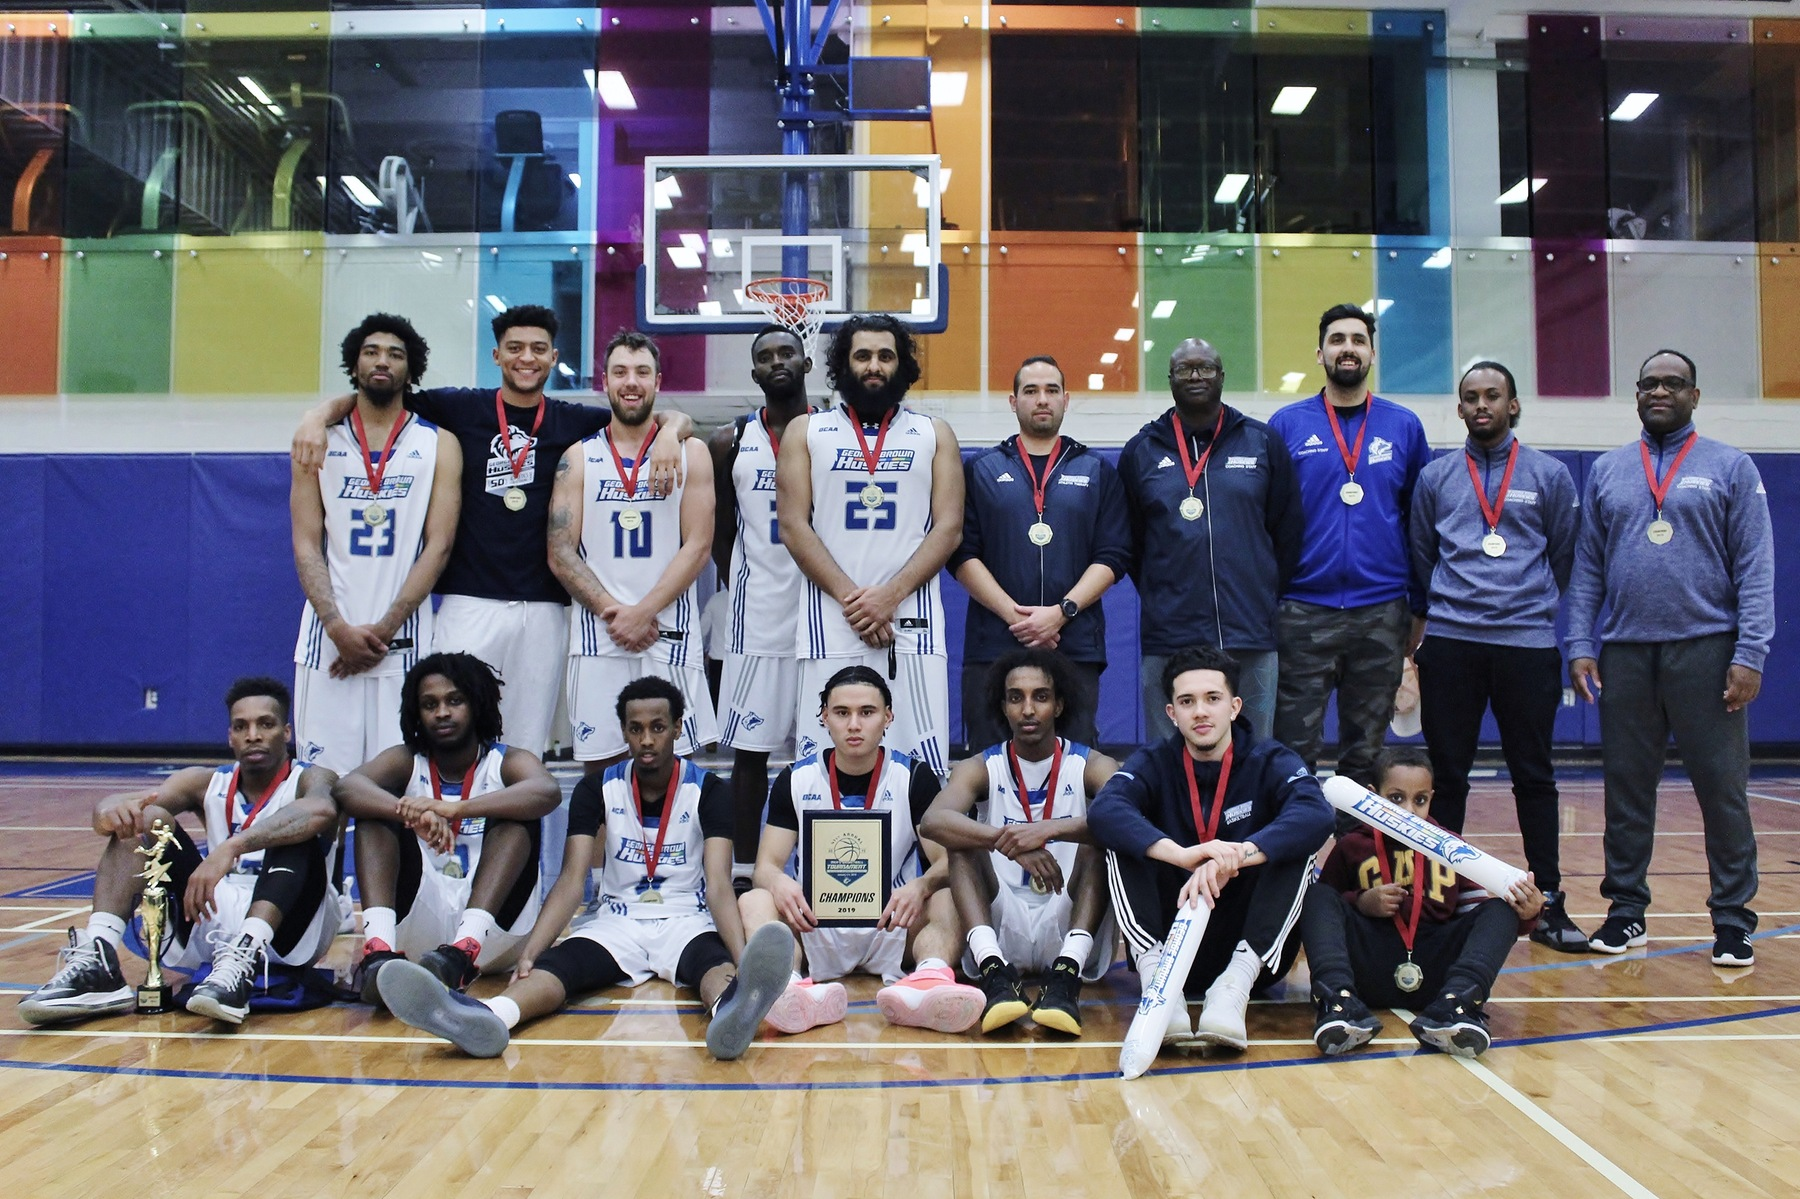 GEORGE BROWN COLLEGE WINS 41ST ANNUAL HUSKIES MEN'S BASKETBALL TOURNAMENT